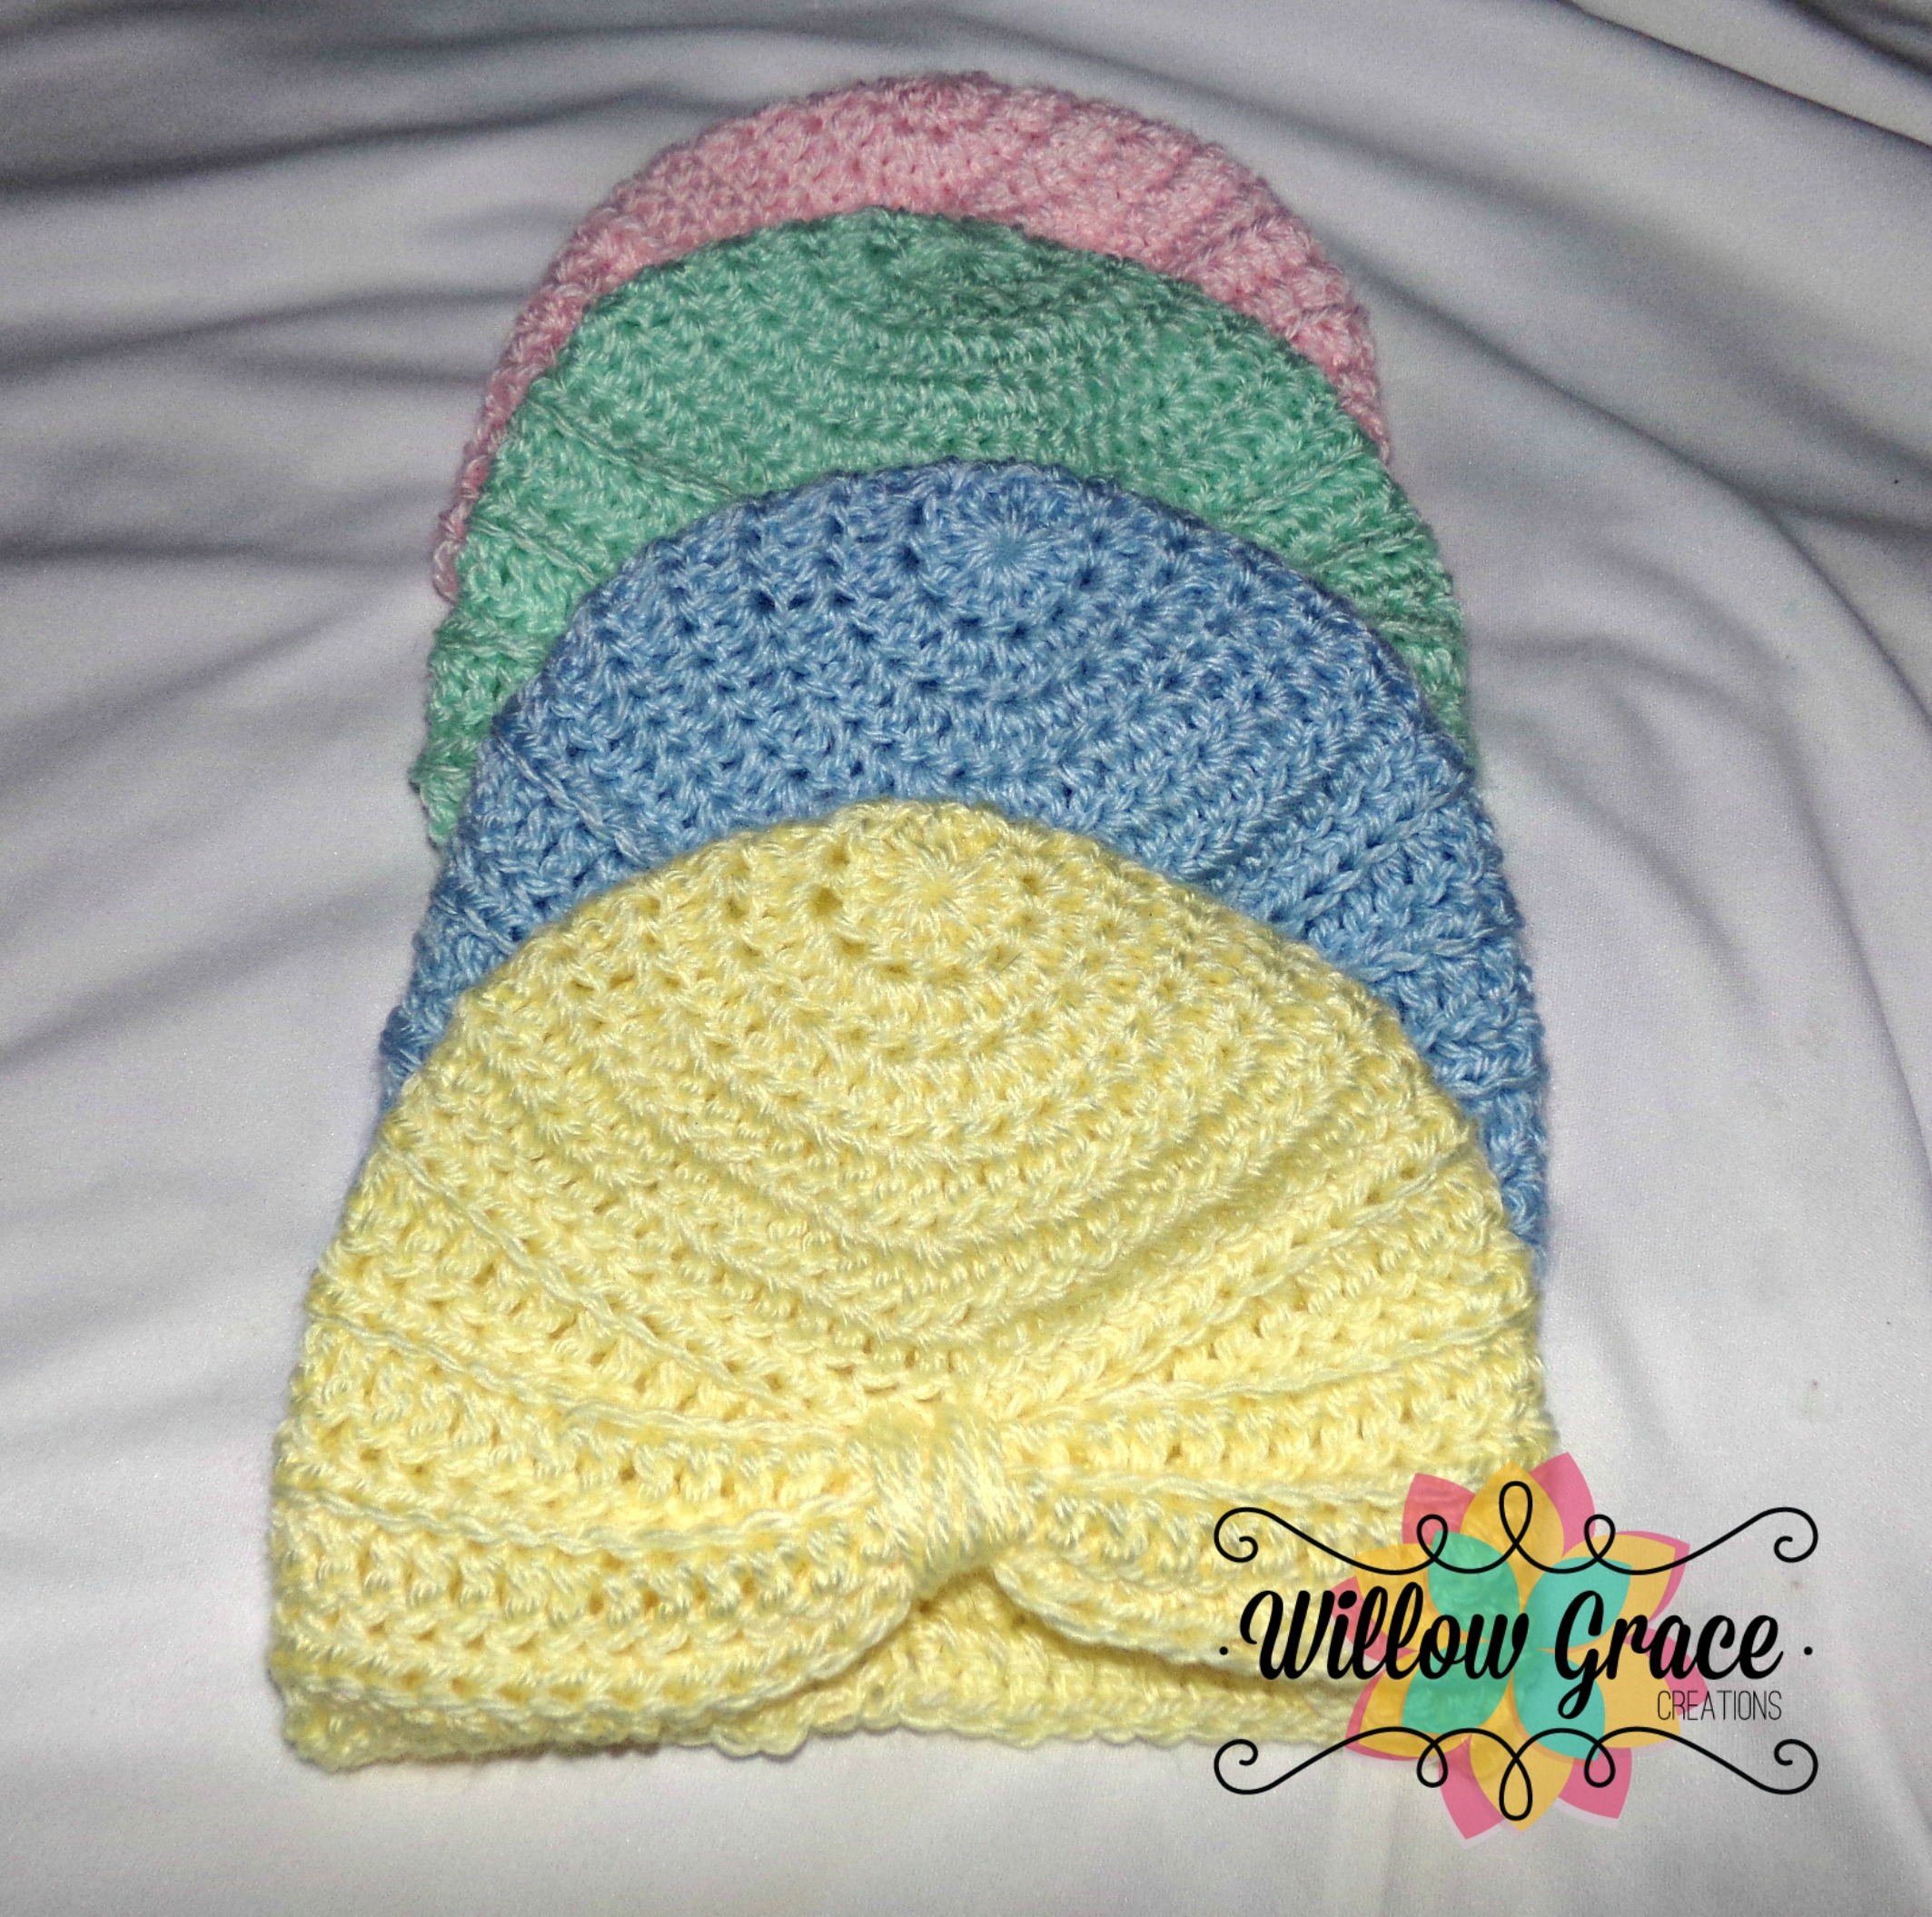 Crochet Baby Turban Hat · Willow Grace Creations · Online Store ... 7e35139e9a4